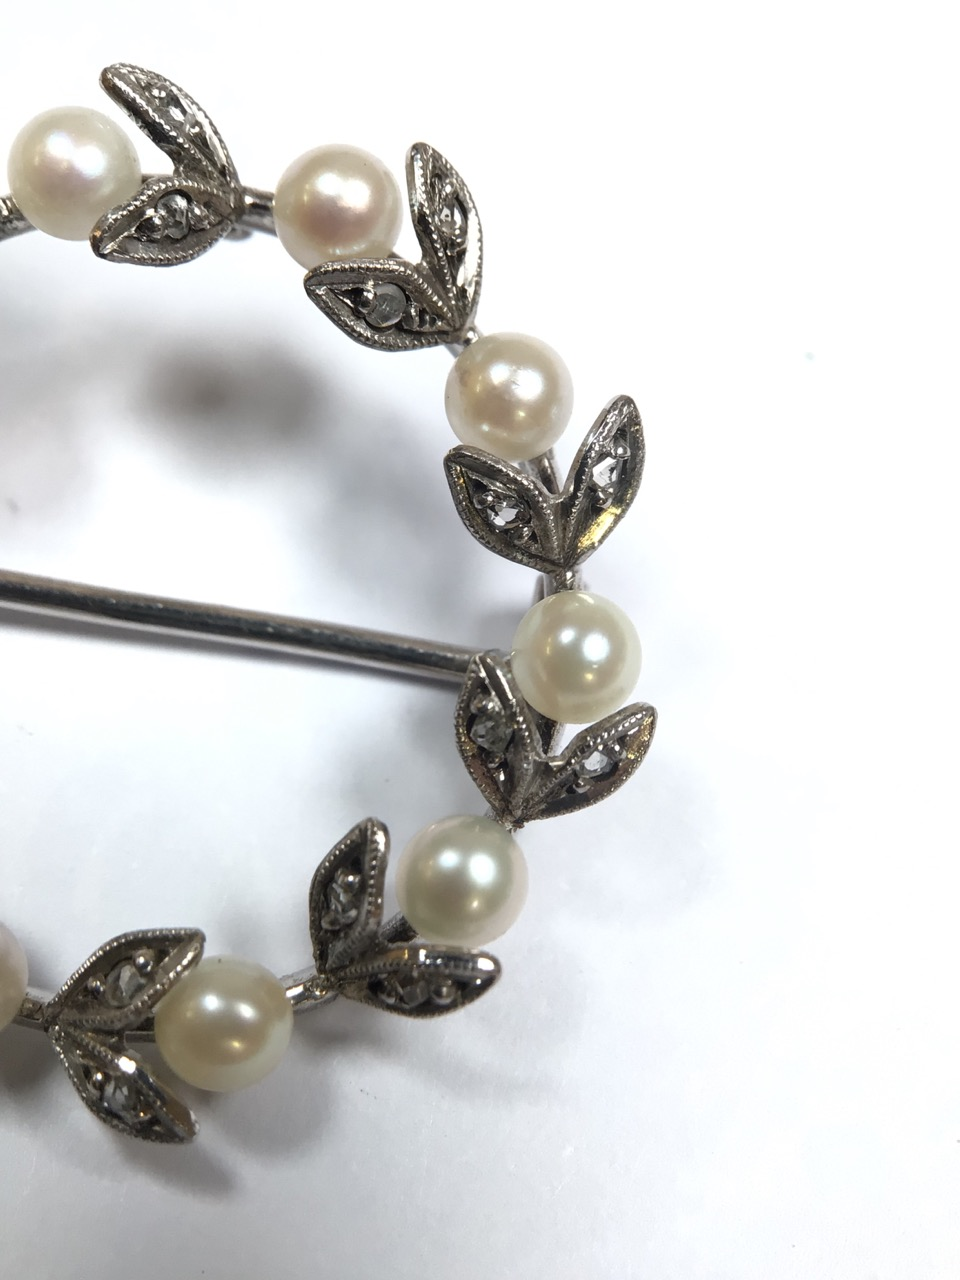 An unmarked precious white metal Belle Époque wreath brooch set with a surround of pearls and - Image 3 of 7